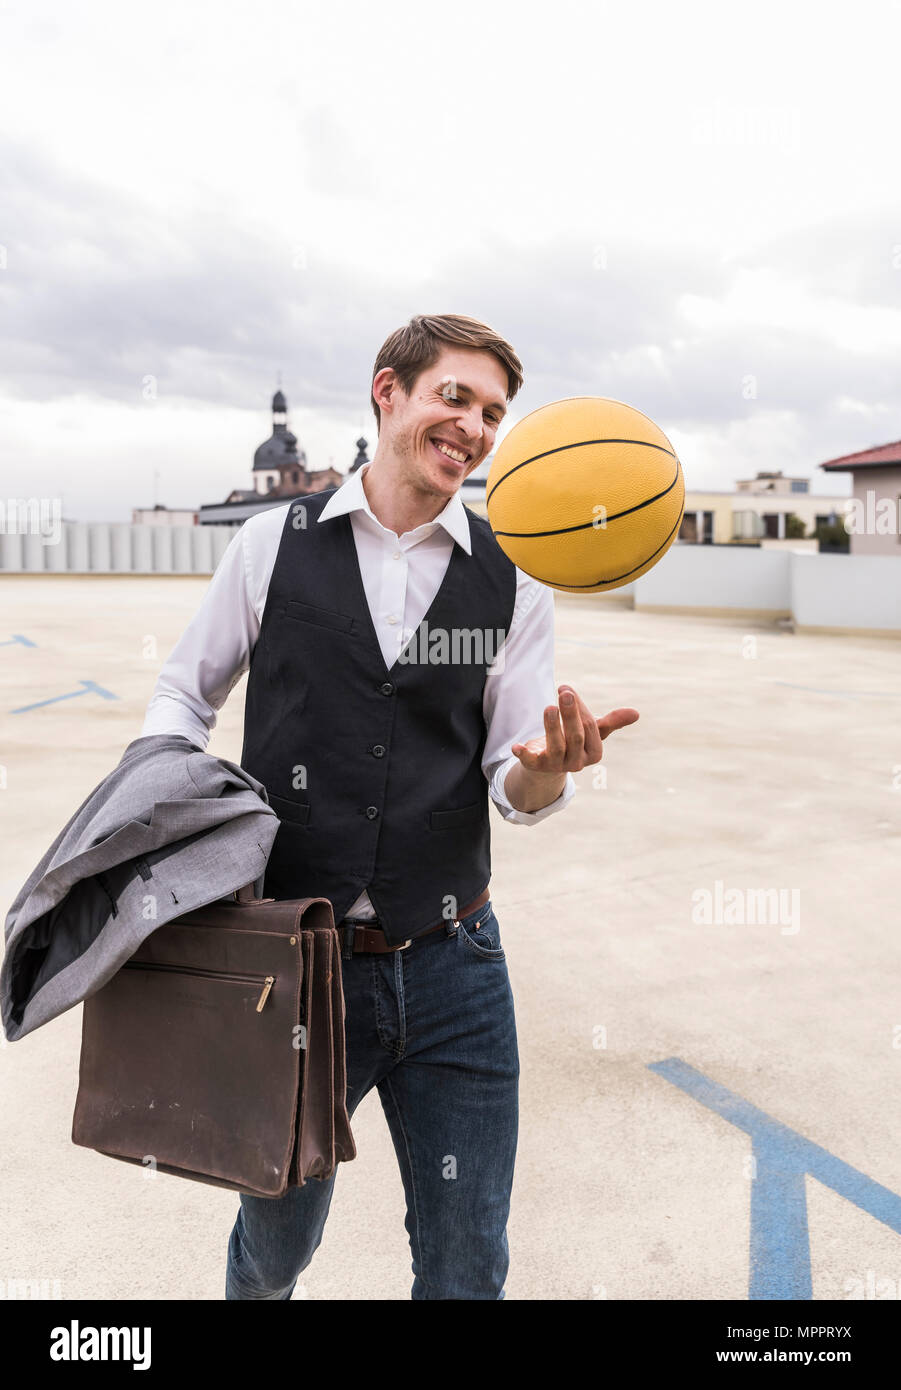 Happy businessman with basketball walking at parking garage - Stock Image